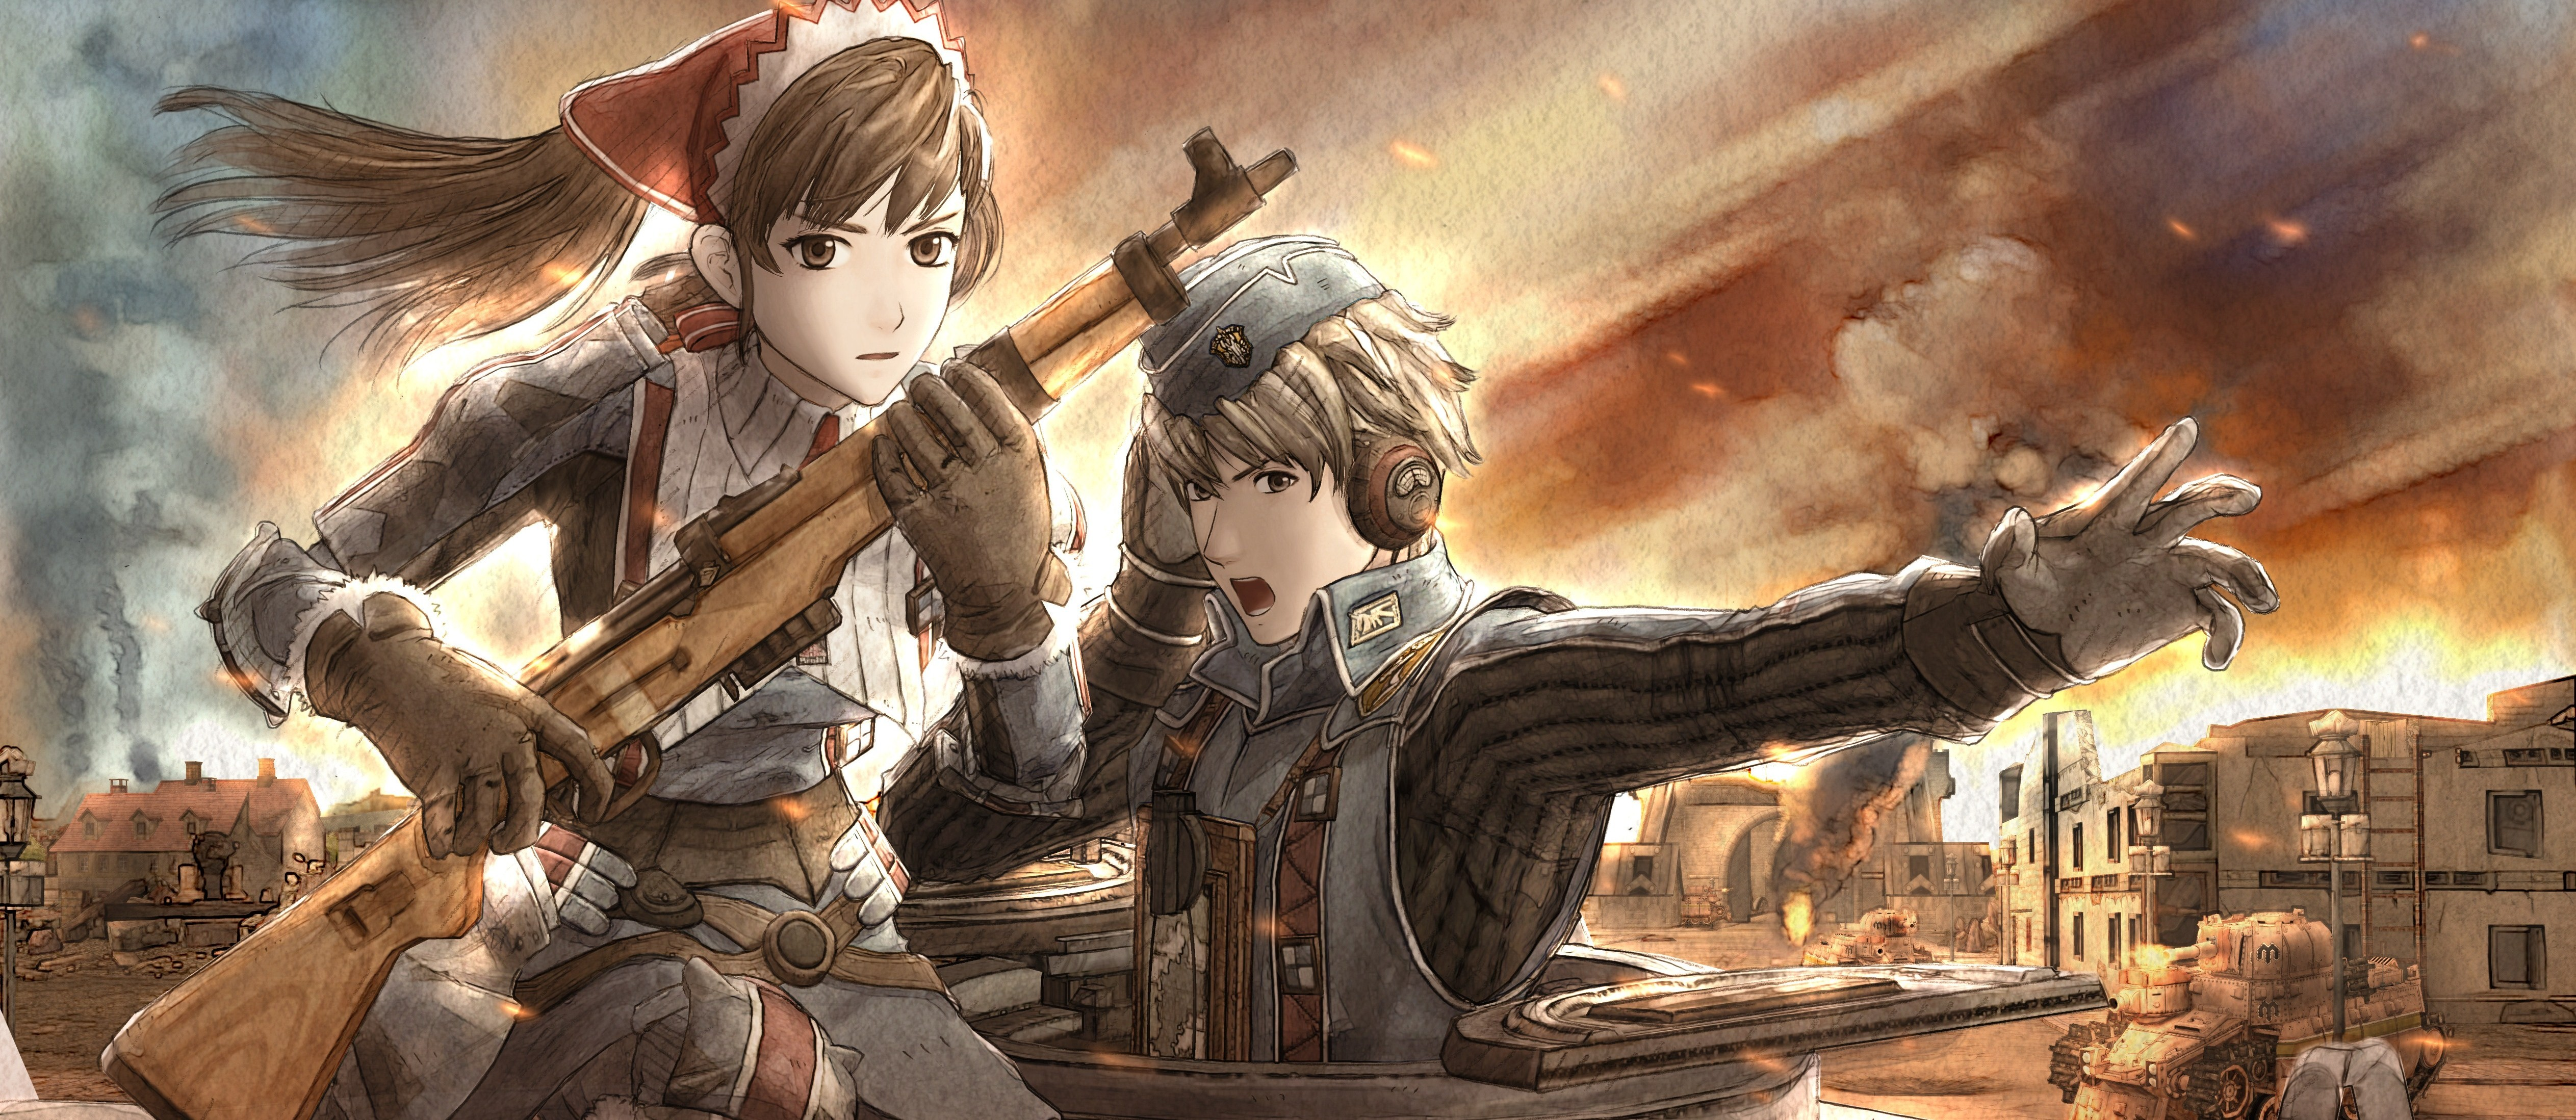 Valkyria Chronicles Wallpaper - Valkyria Chronicles PC Release Date Announced